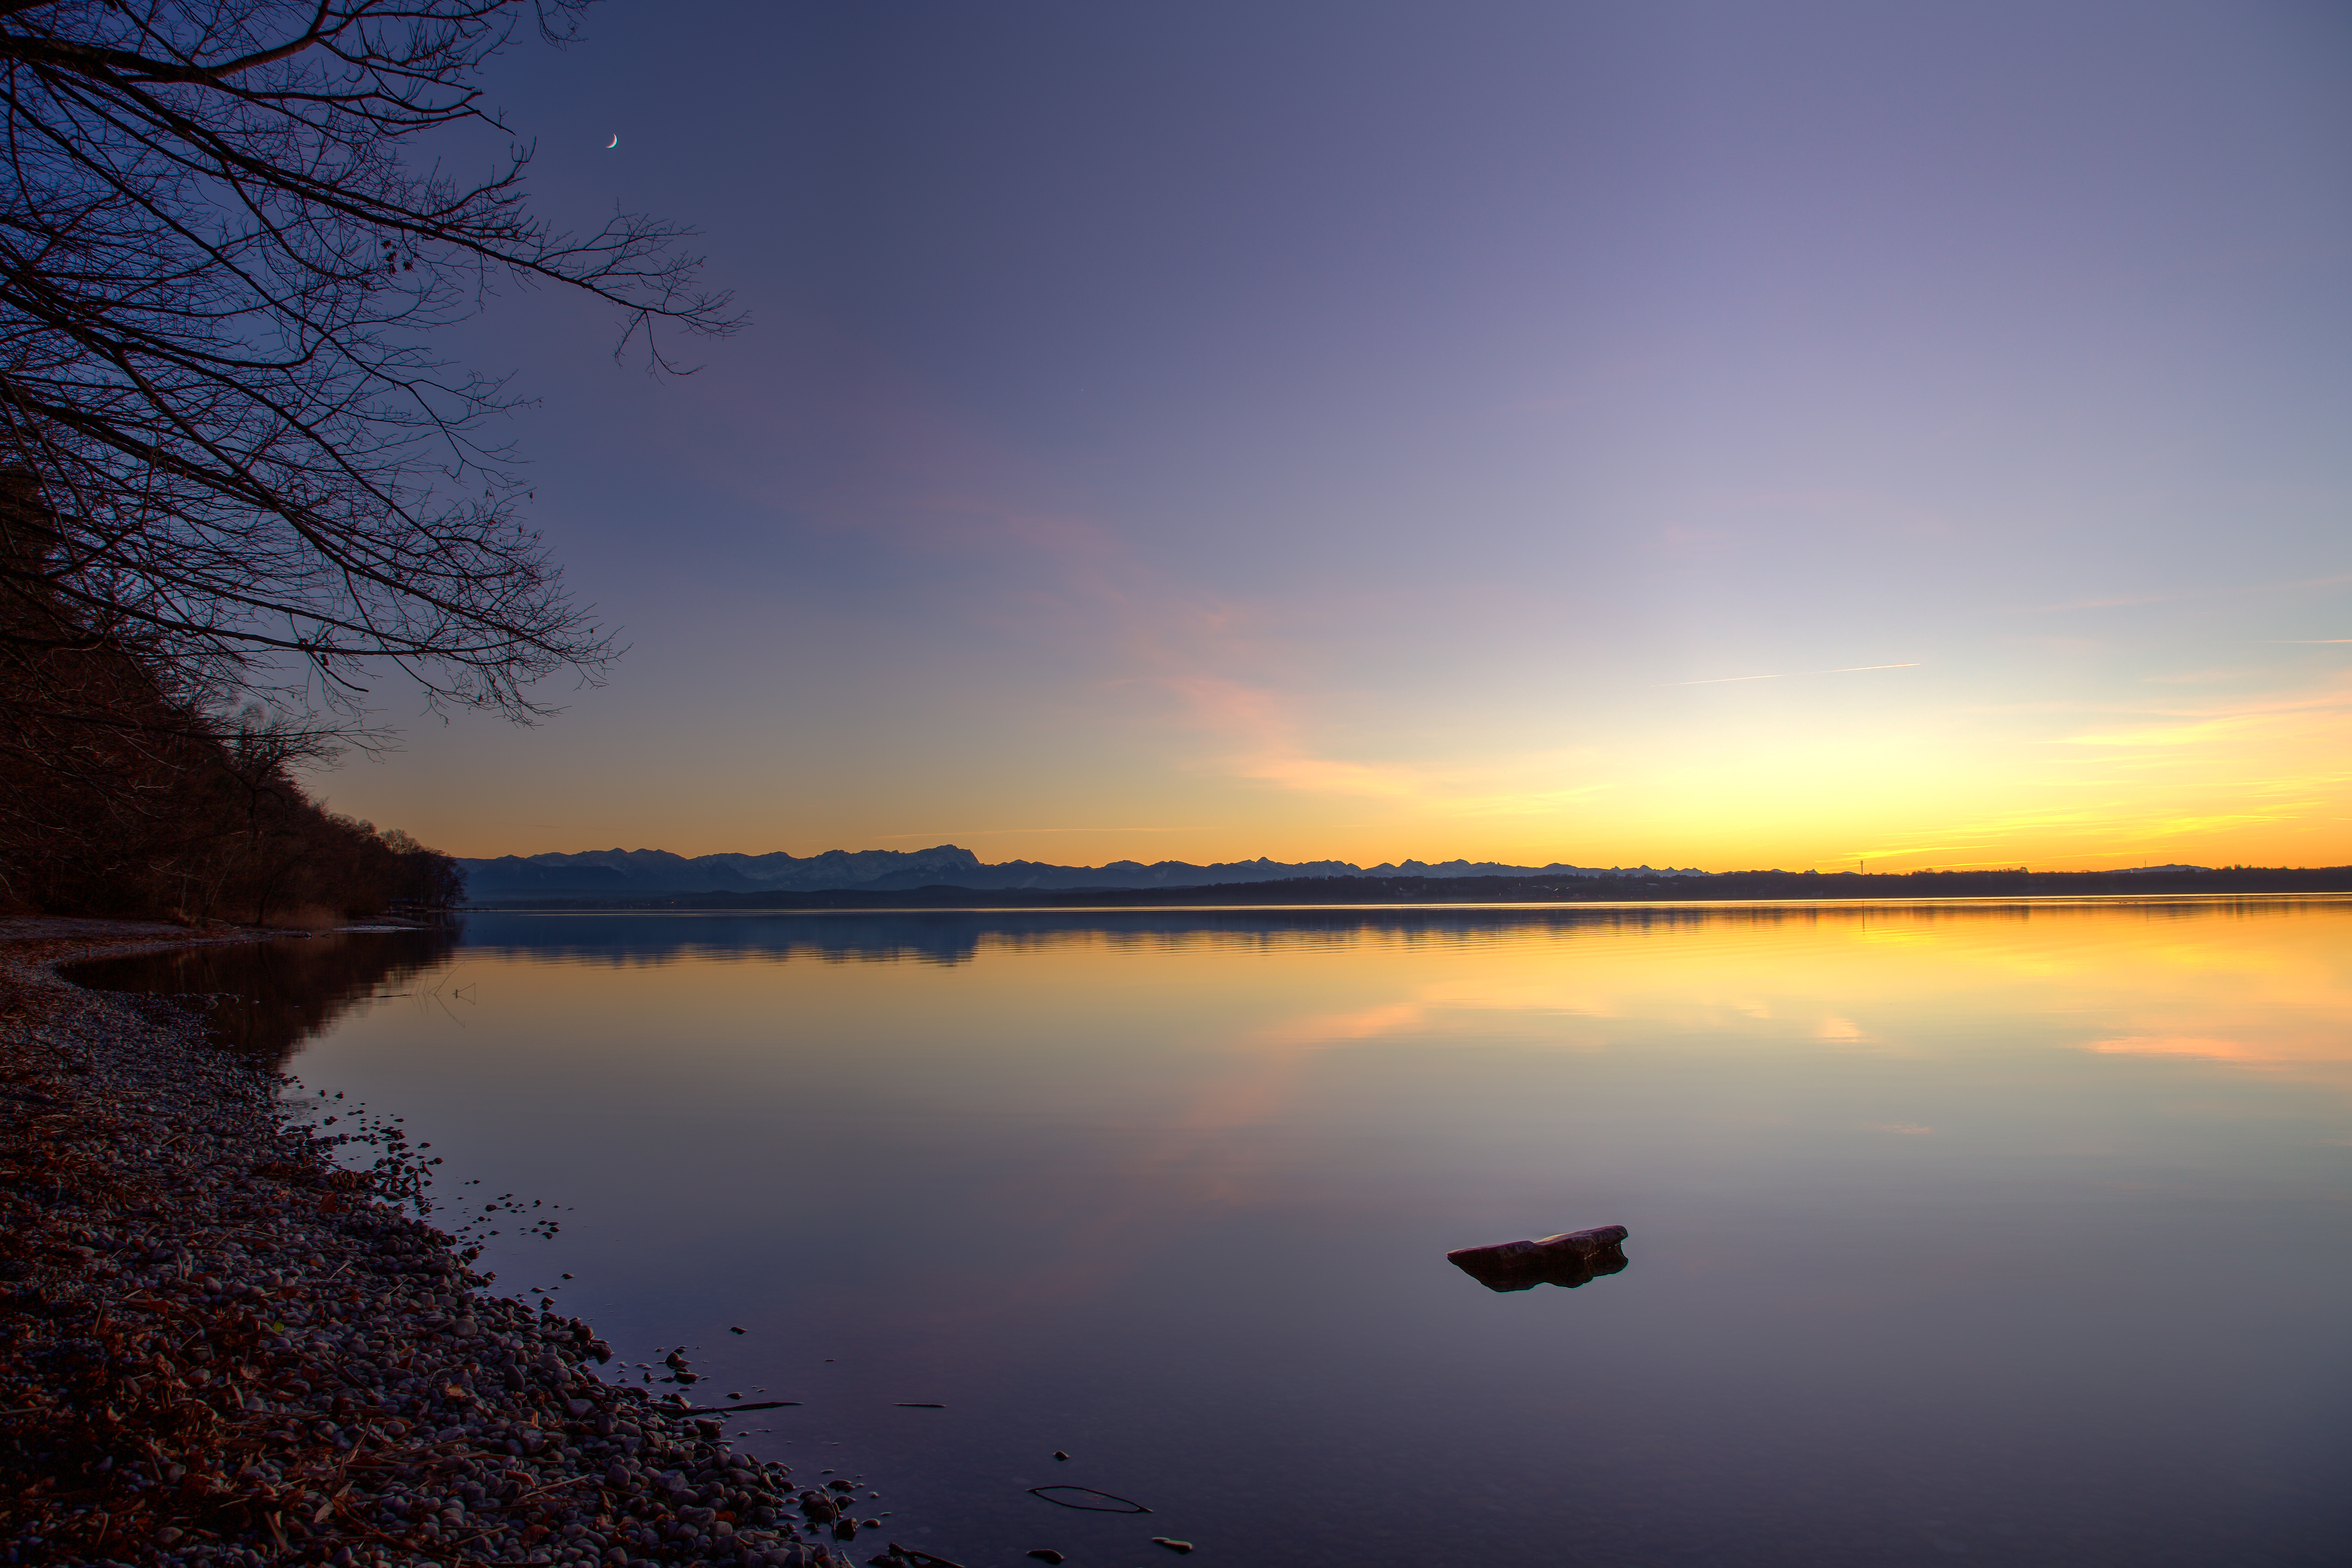 Starnberger See, Germany